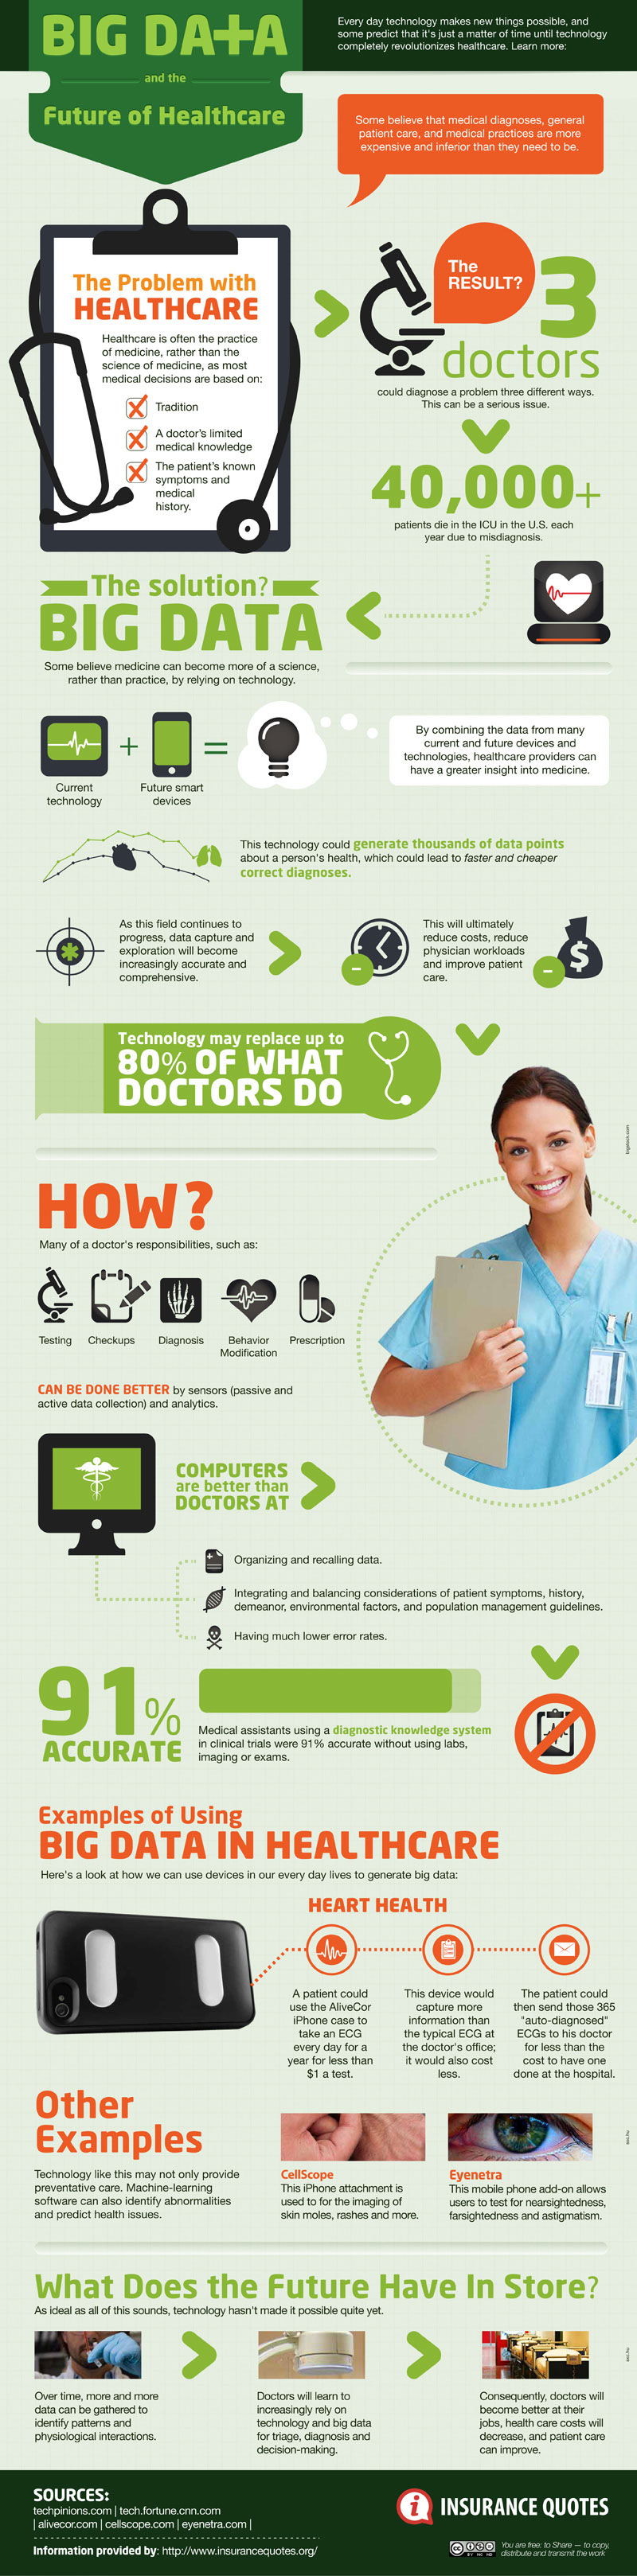 Big Data in Healthcare-Infographic